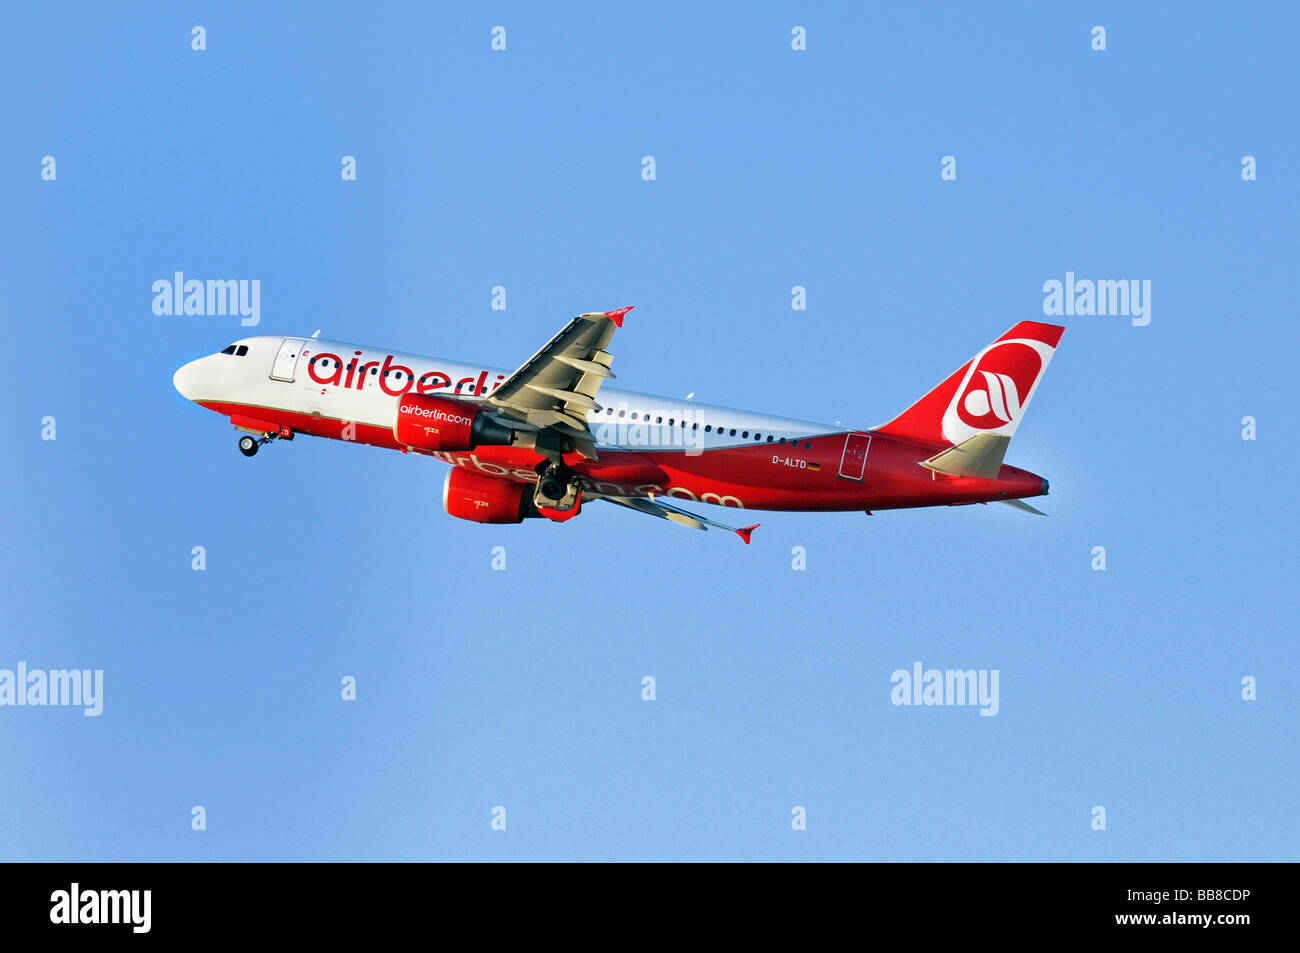 Airbus A320-214, airplane of Airberlin in climb flight, airberlin.com - Stock Image